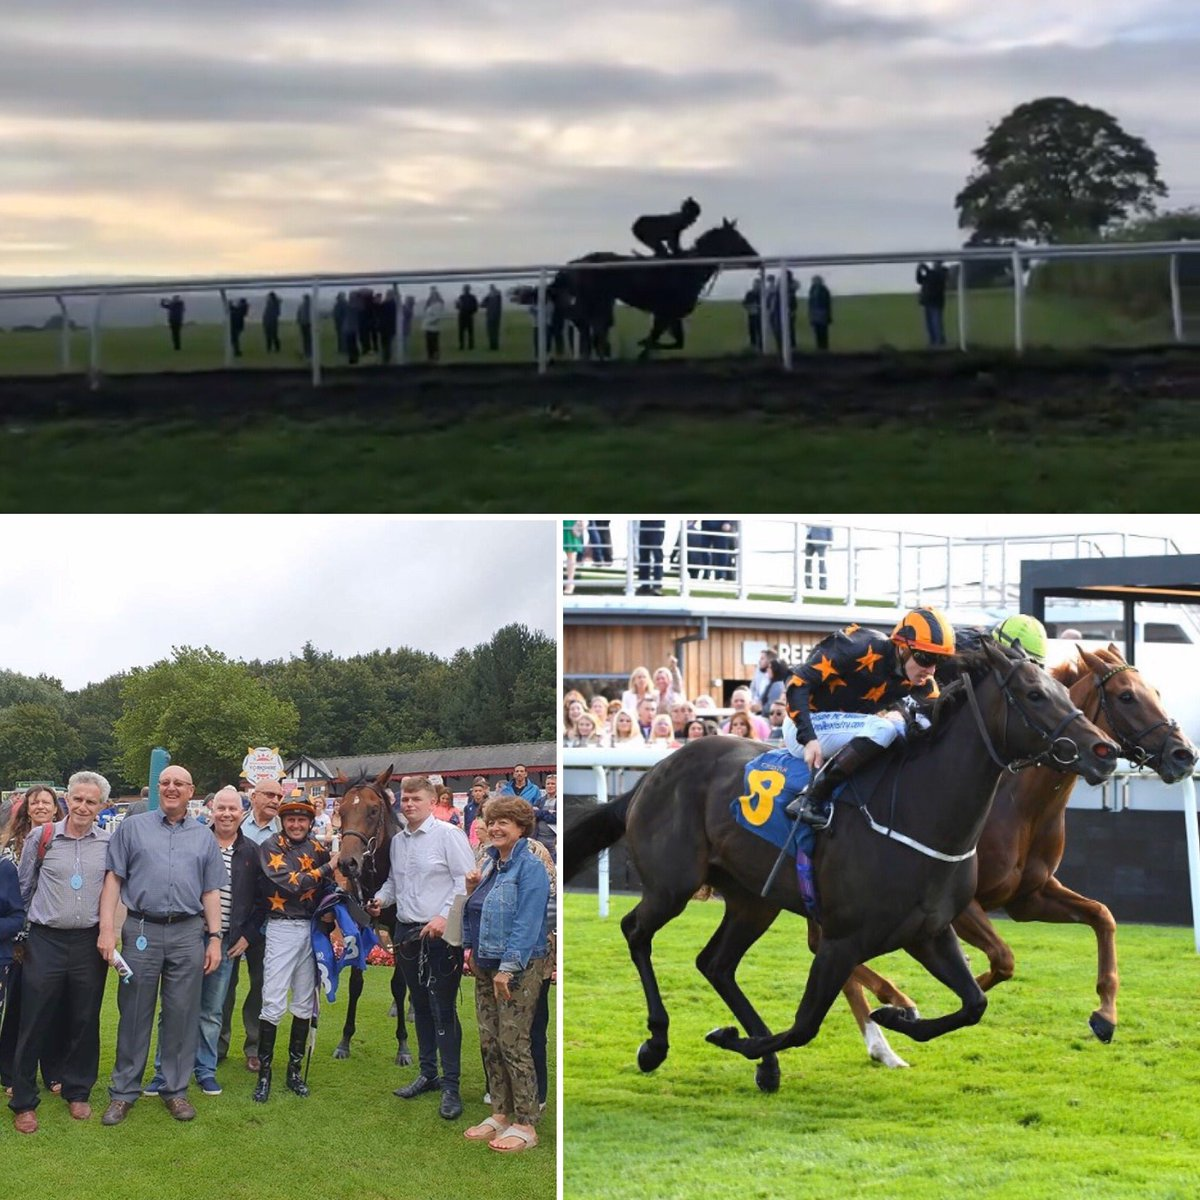 Join the RFERC for just £249 a year, membership to the club would make  a fantastic Xmas gift for any racing enthusiast .  We've had our best year to date with 12 winners and win and place strike rate of over 50%. Get in touch today!  https://t.co/IqiUpIqz3v